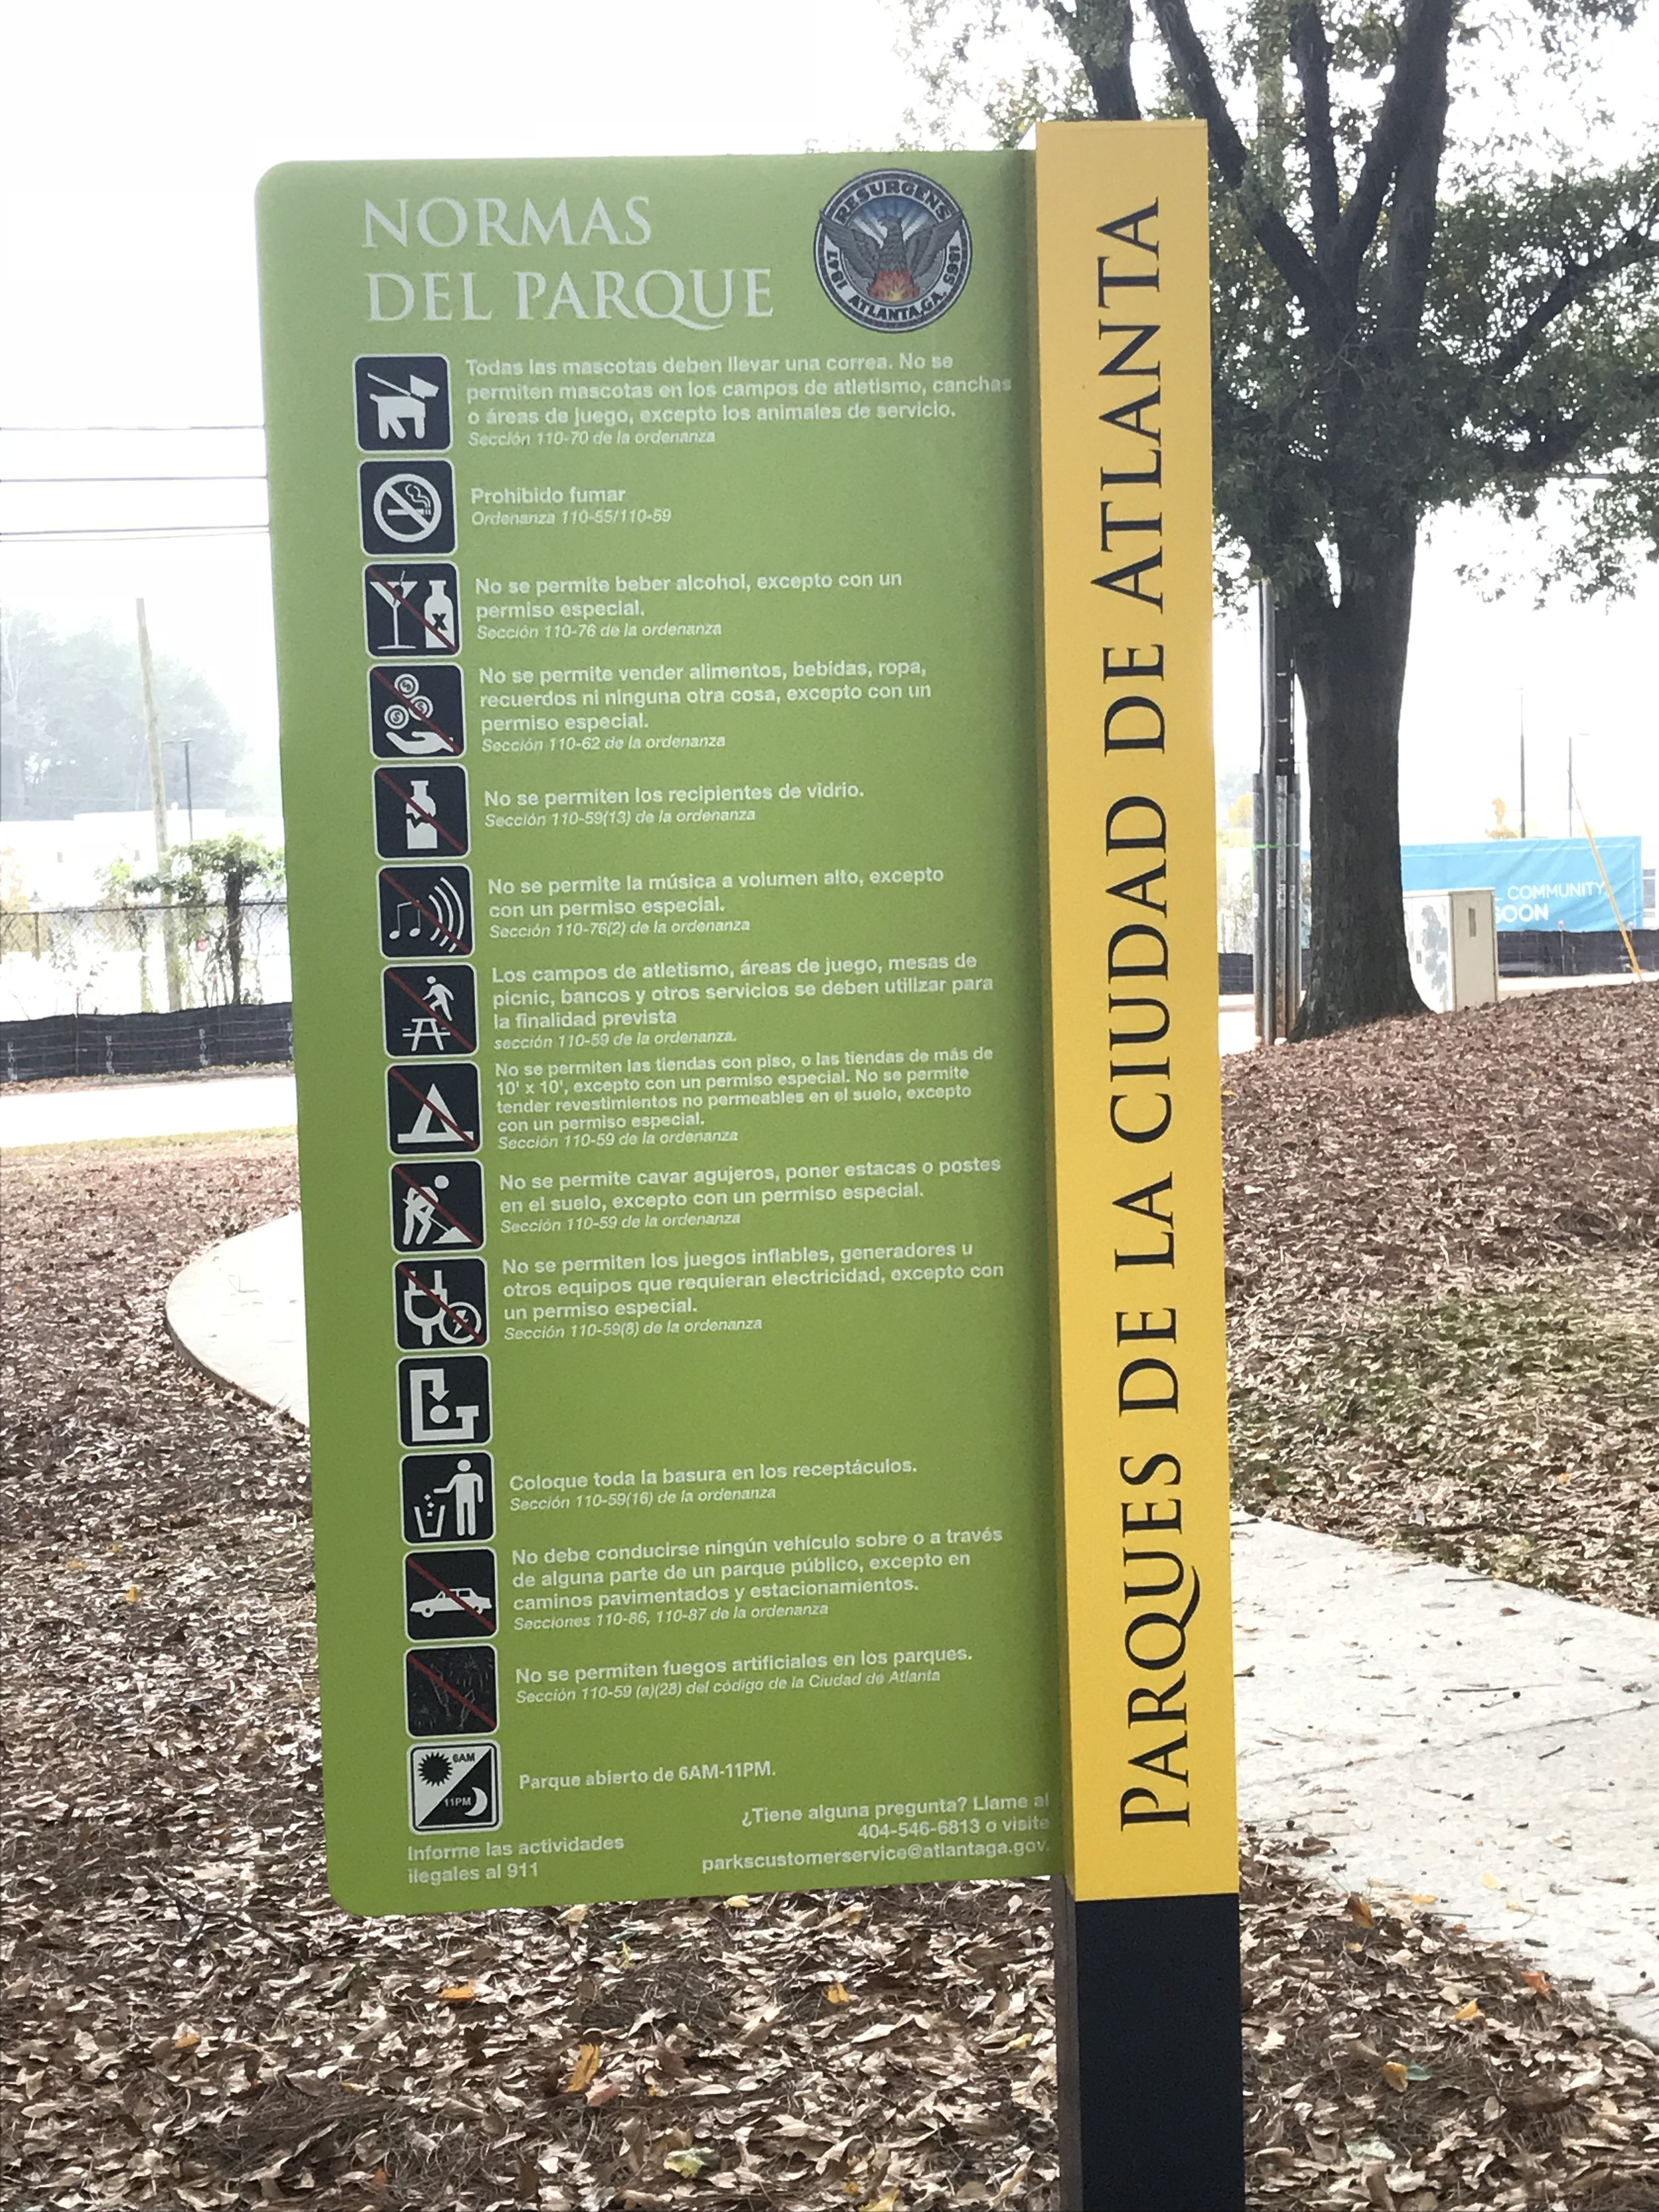 The only park in Atlanta to feature signage in English and Spanish.